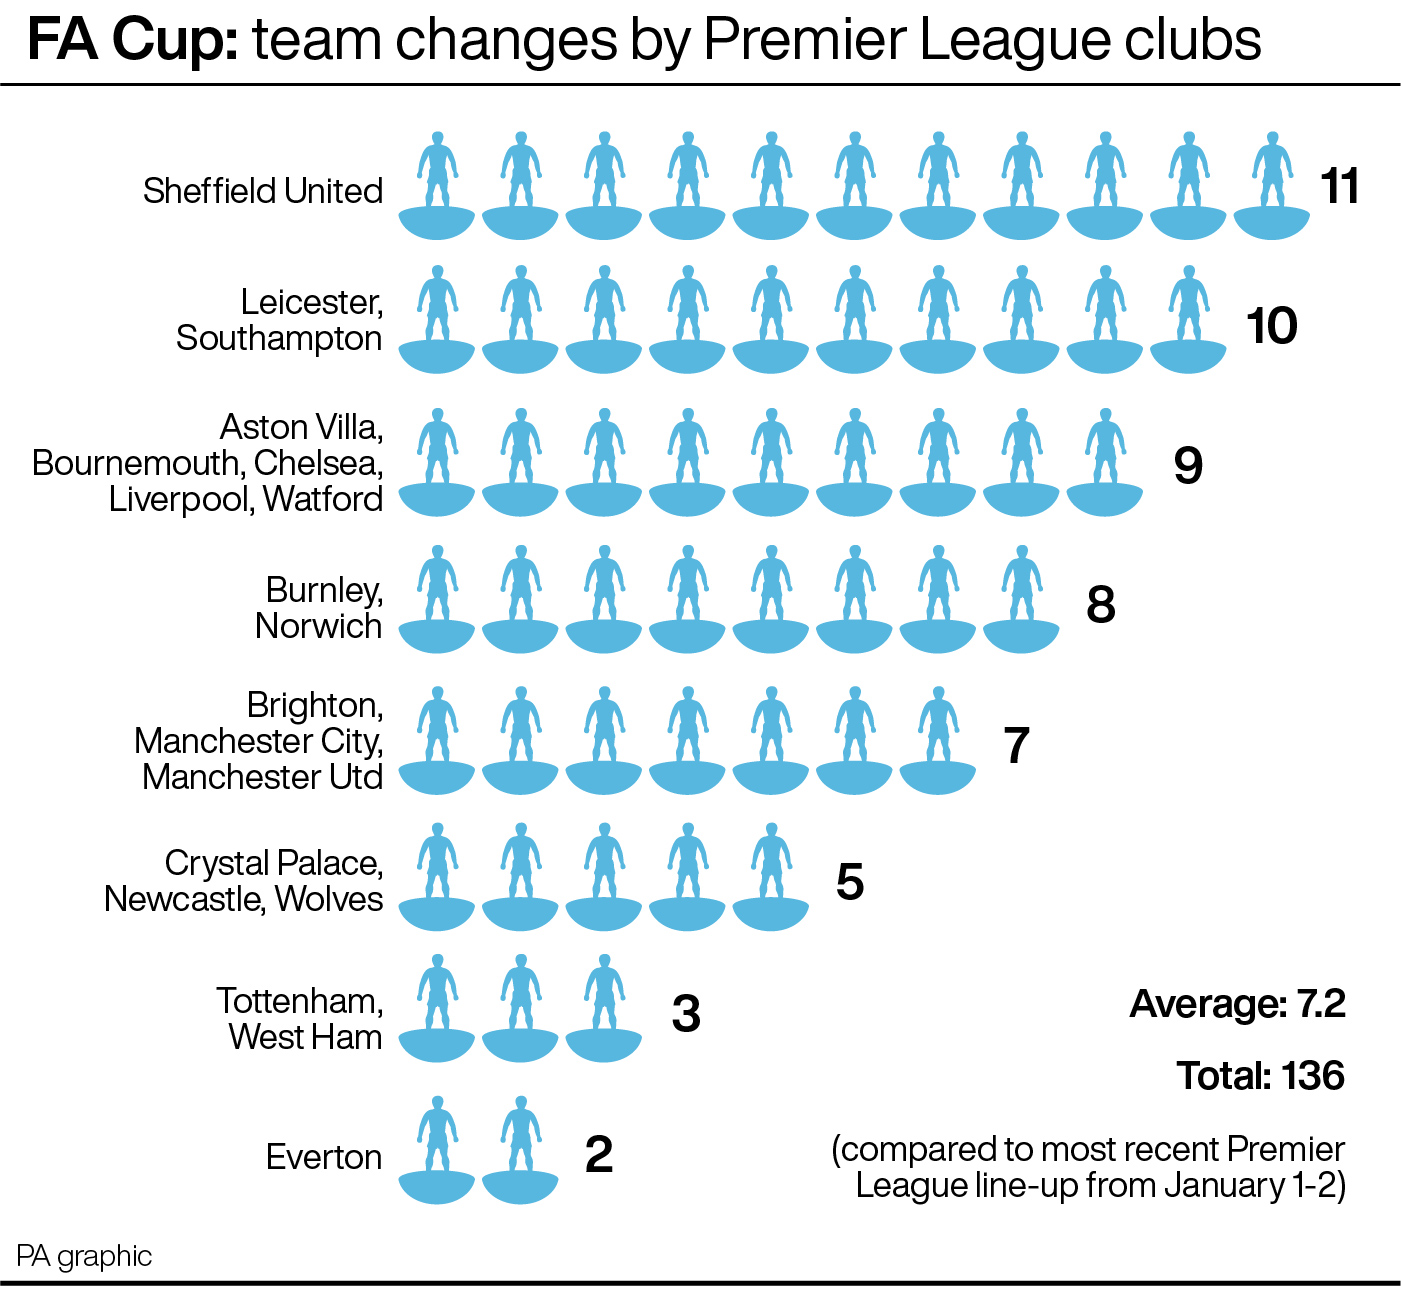 FA Cup: team changes by Premier League clubs